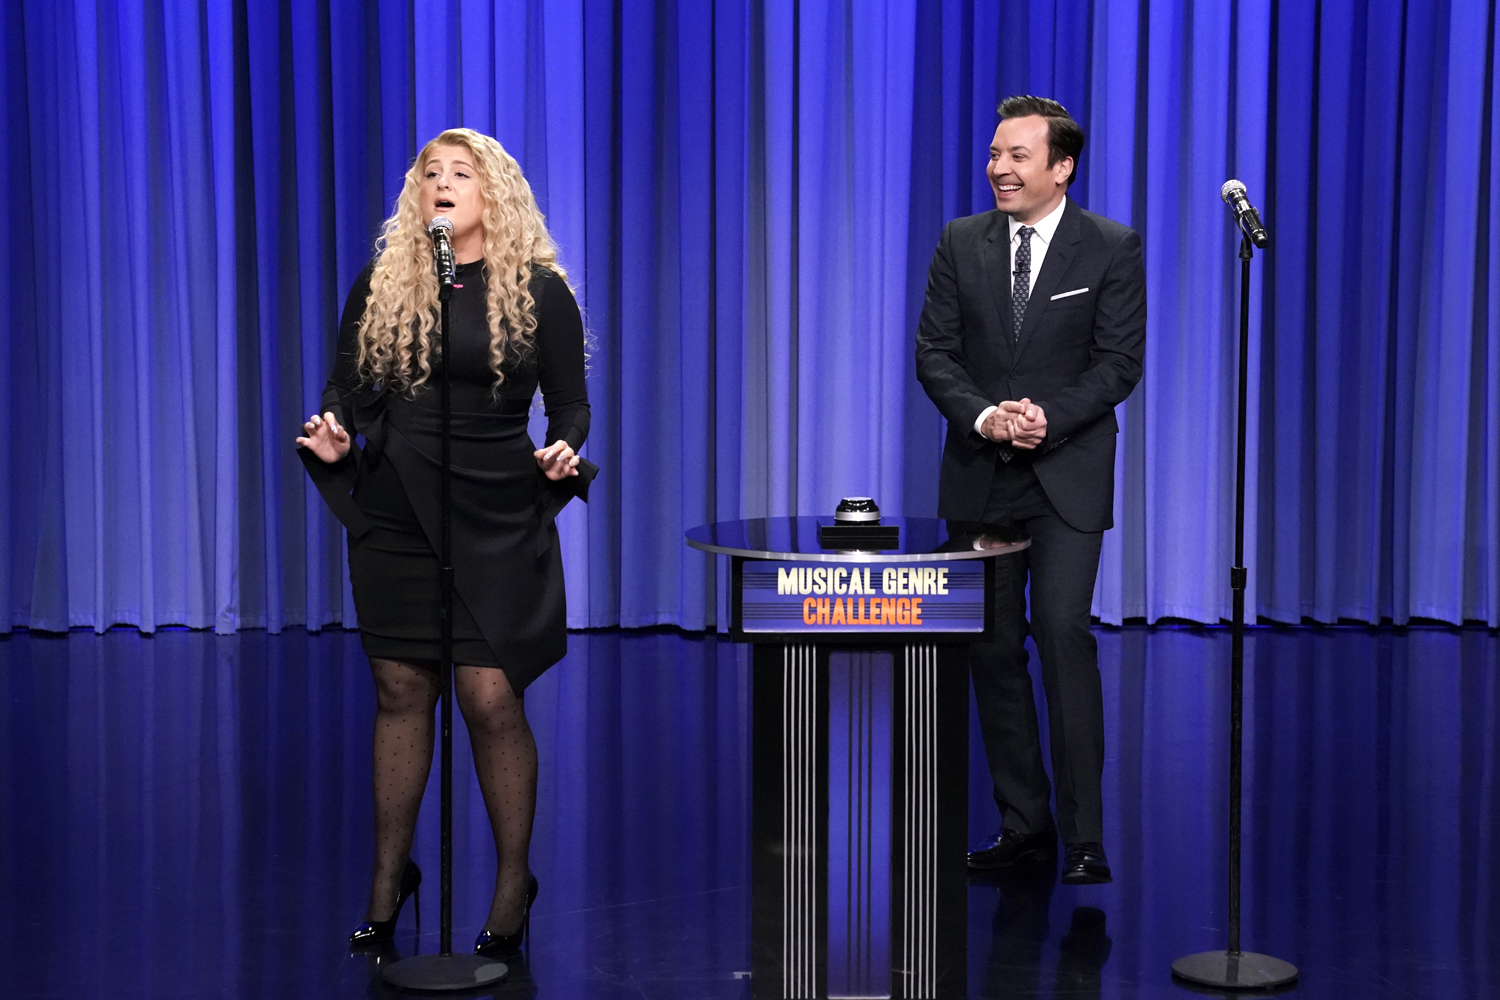 """Meghan Trainor and host Jimmy Fallon during """"Musical Genre Challenge"""""""